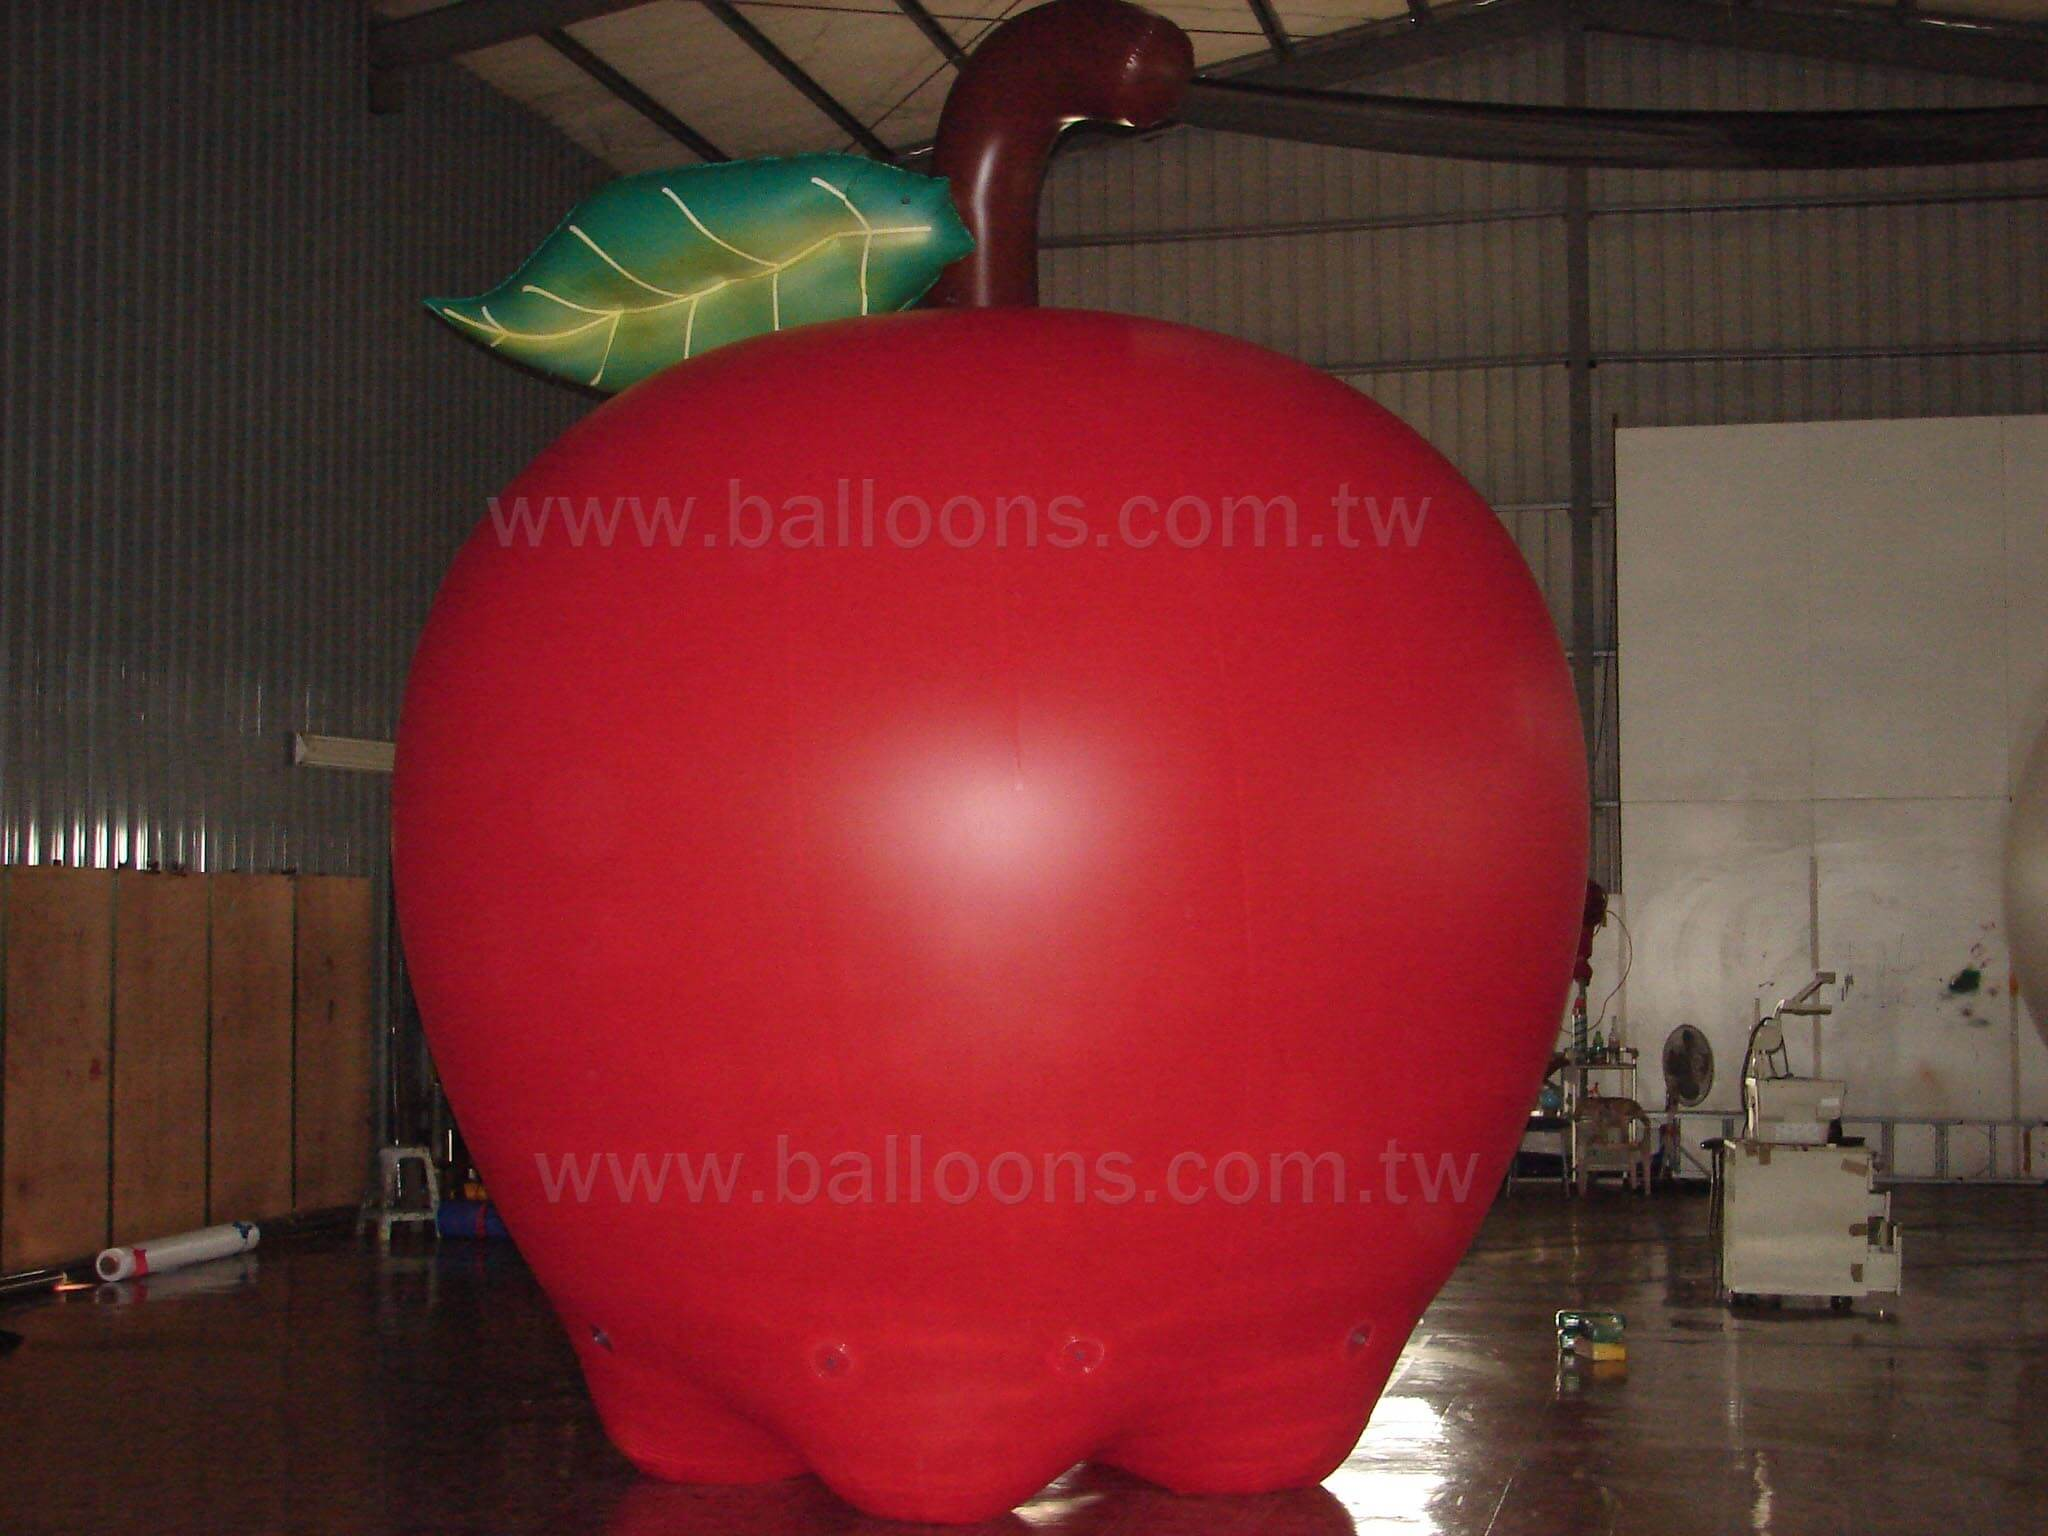 Inflatable red apple advertising balloon with leave and stalk紅蘋果含梗與葉子造型氣球